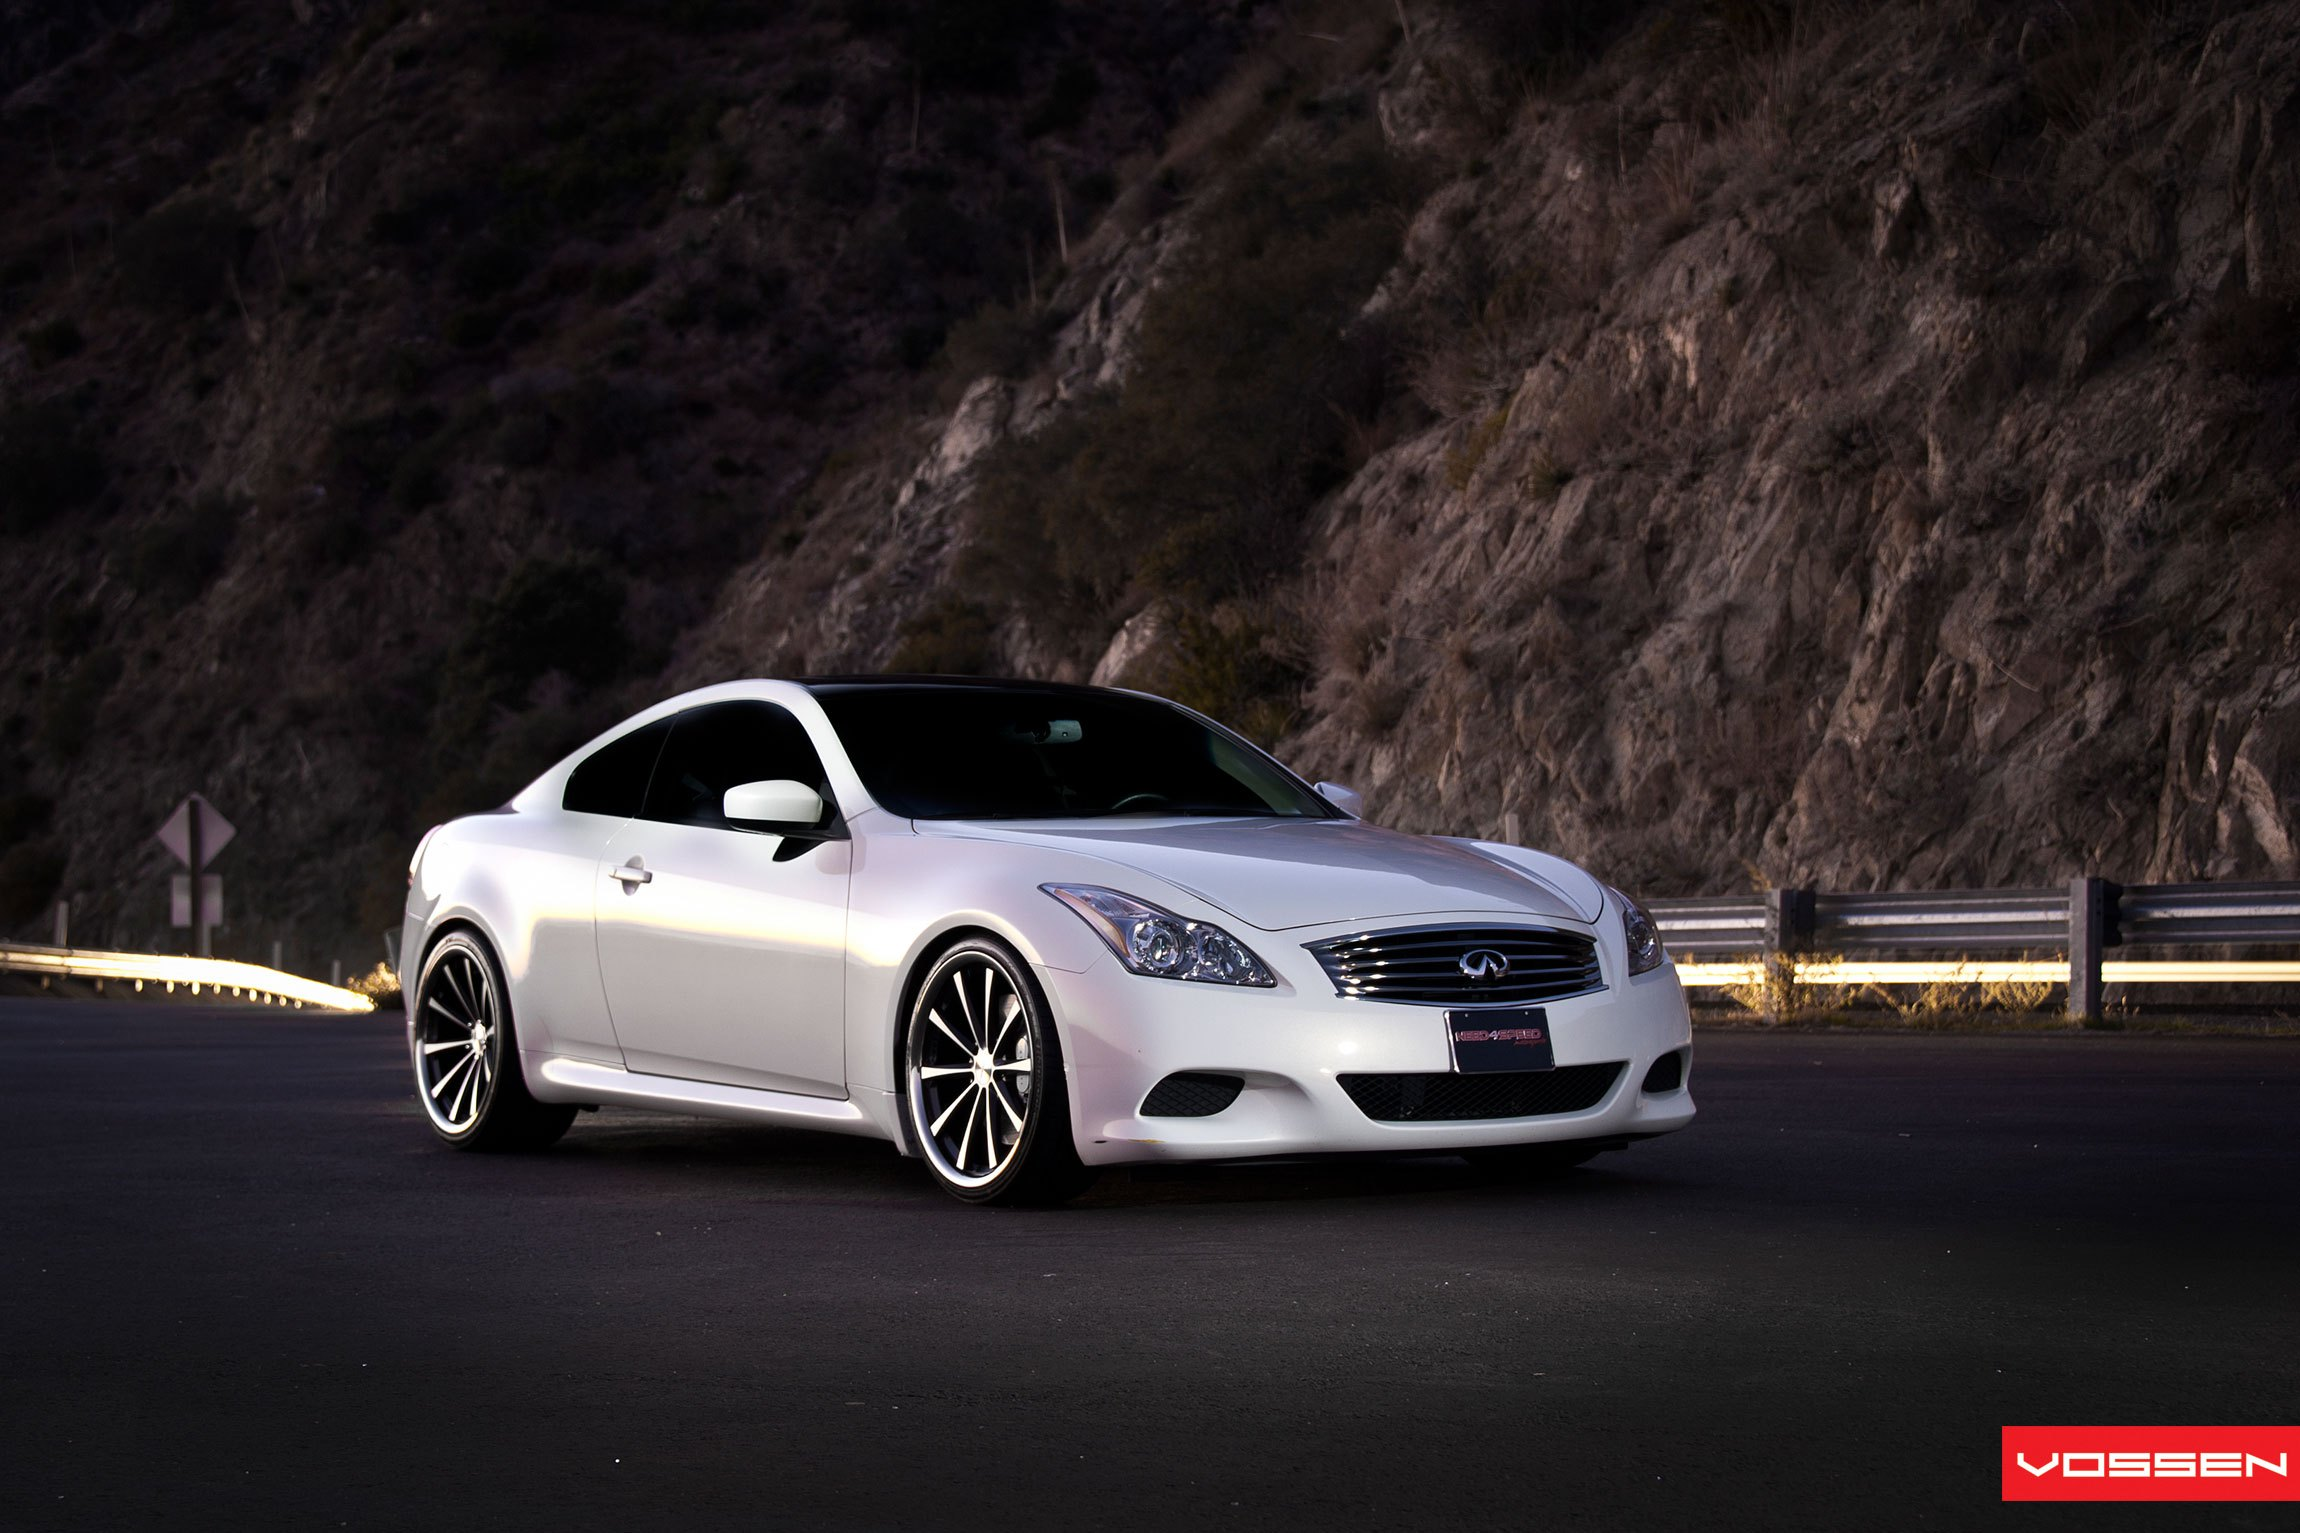 Pearl White Infiniti G37 Boasting Forged Rims By Vossen